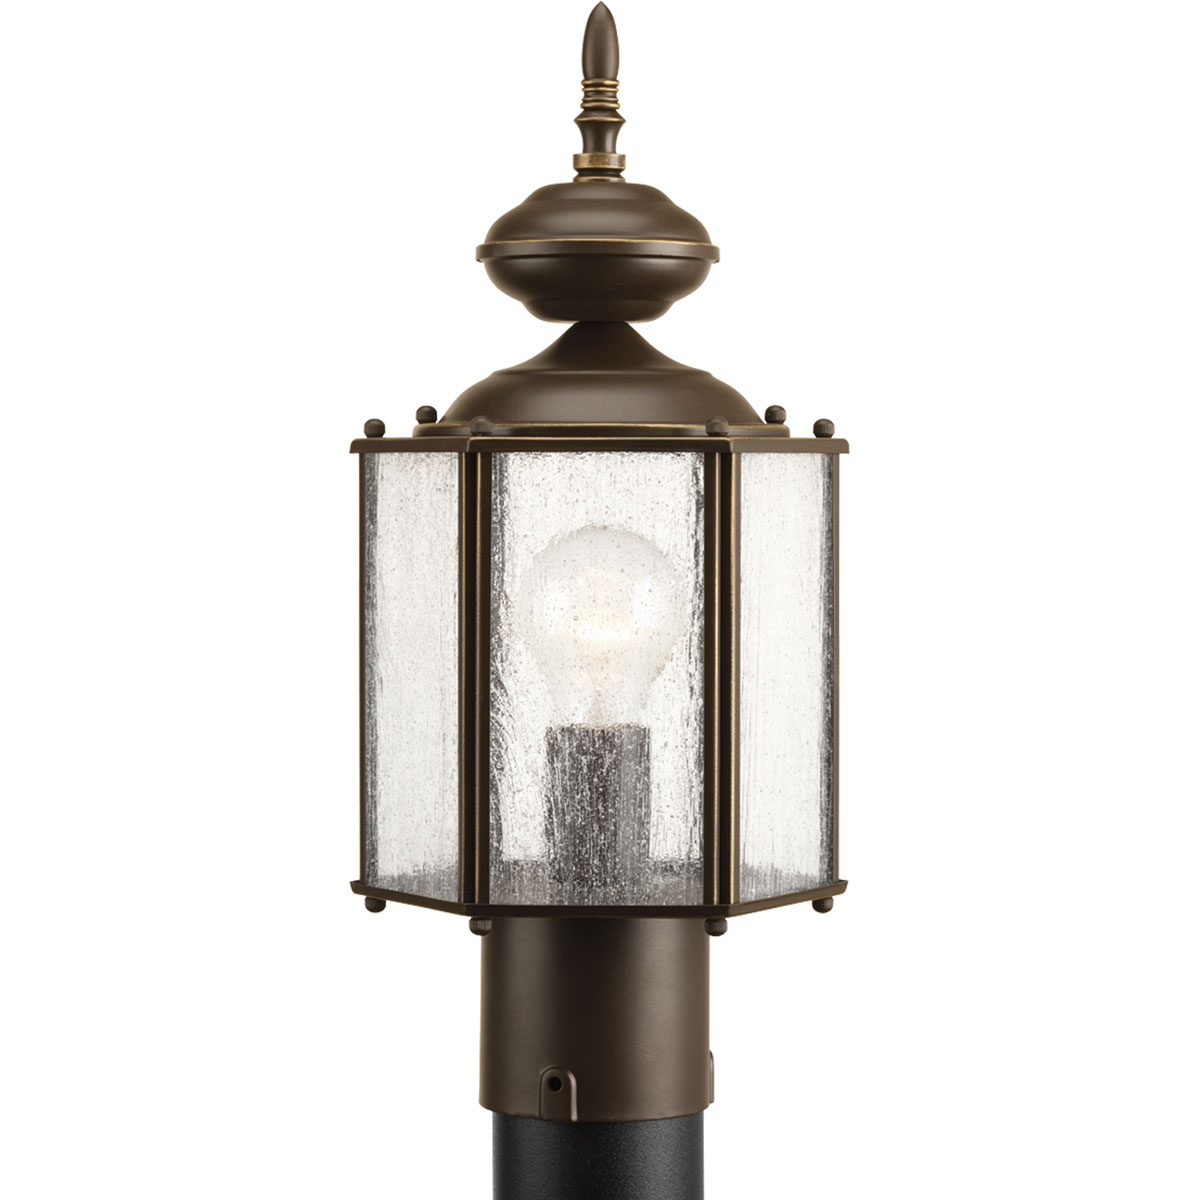 PRO P5475-20 1X100M Antique Bronze Clear Seeded Glass Post Light